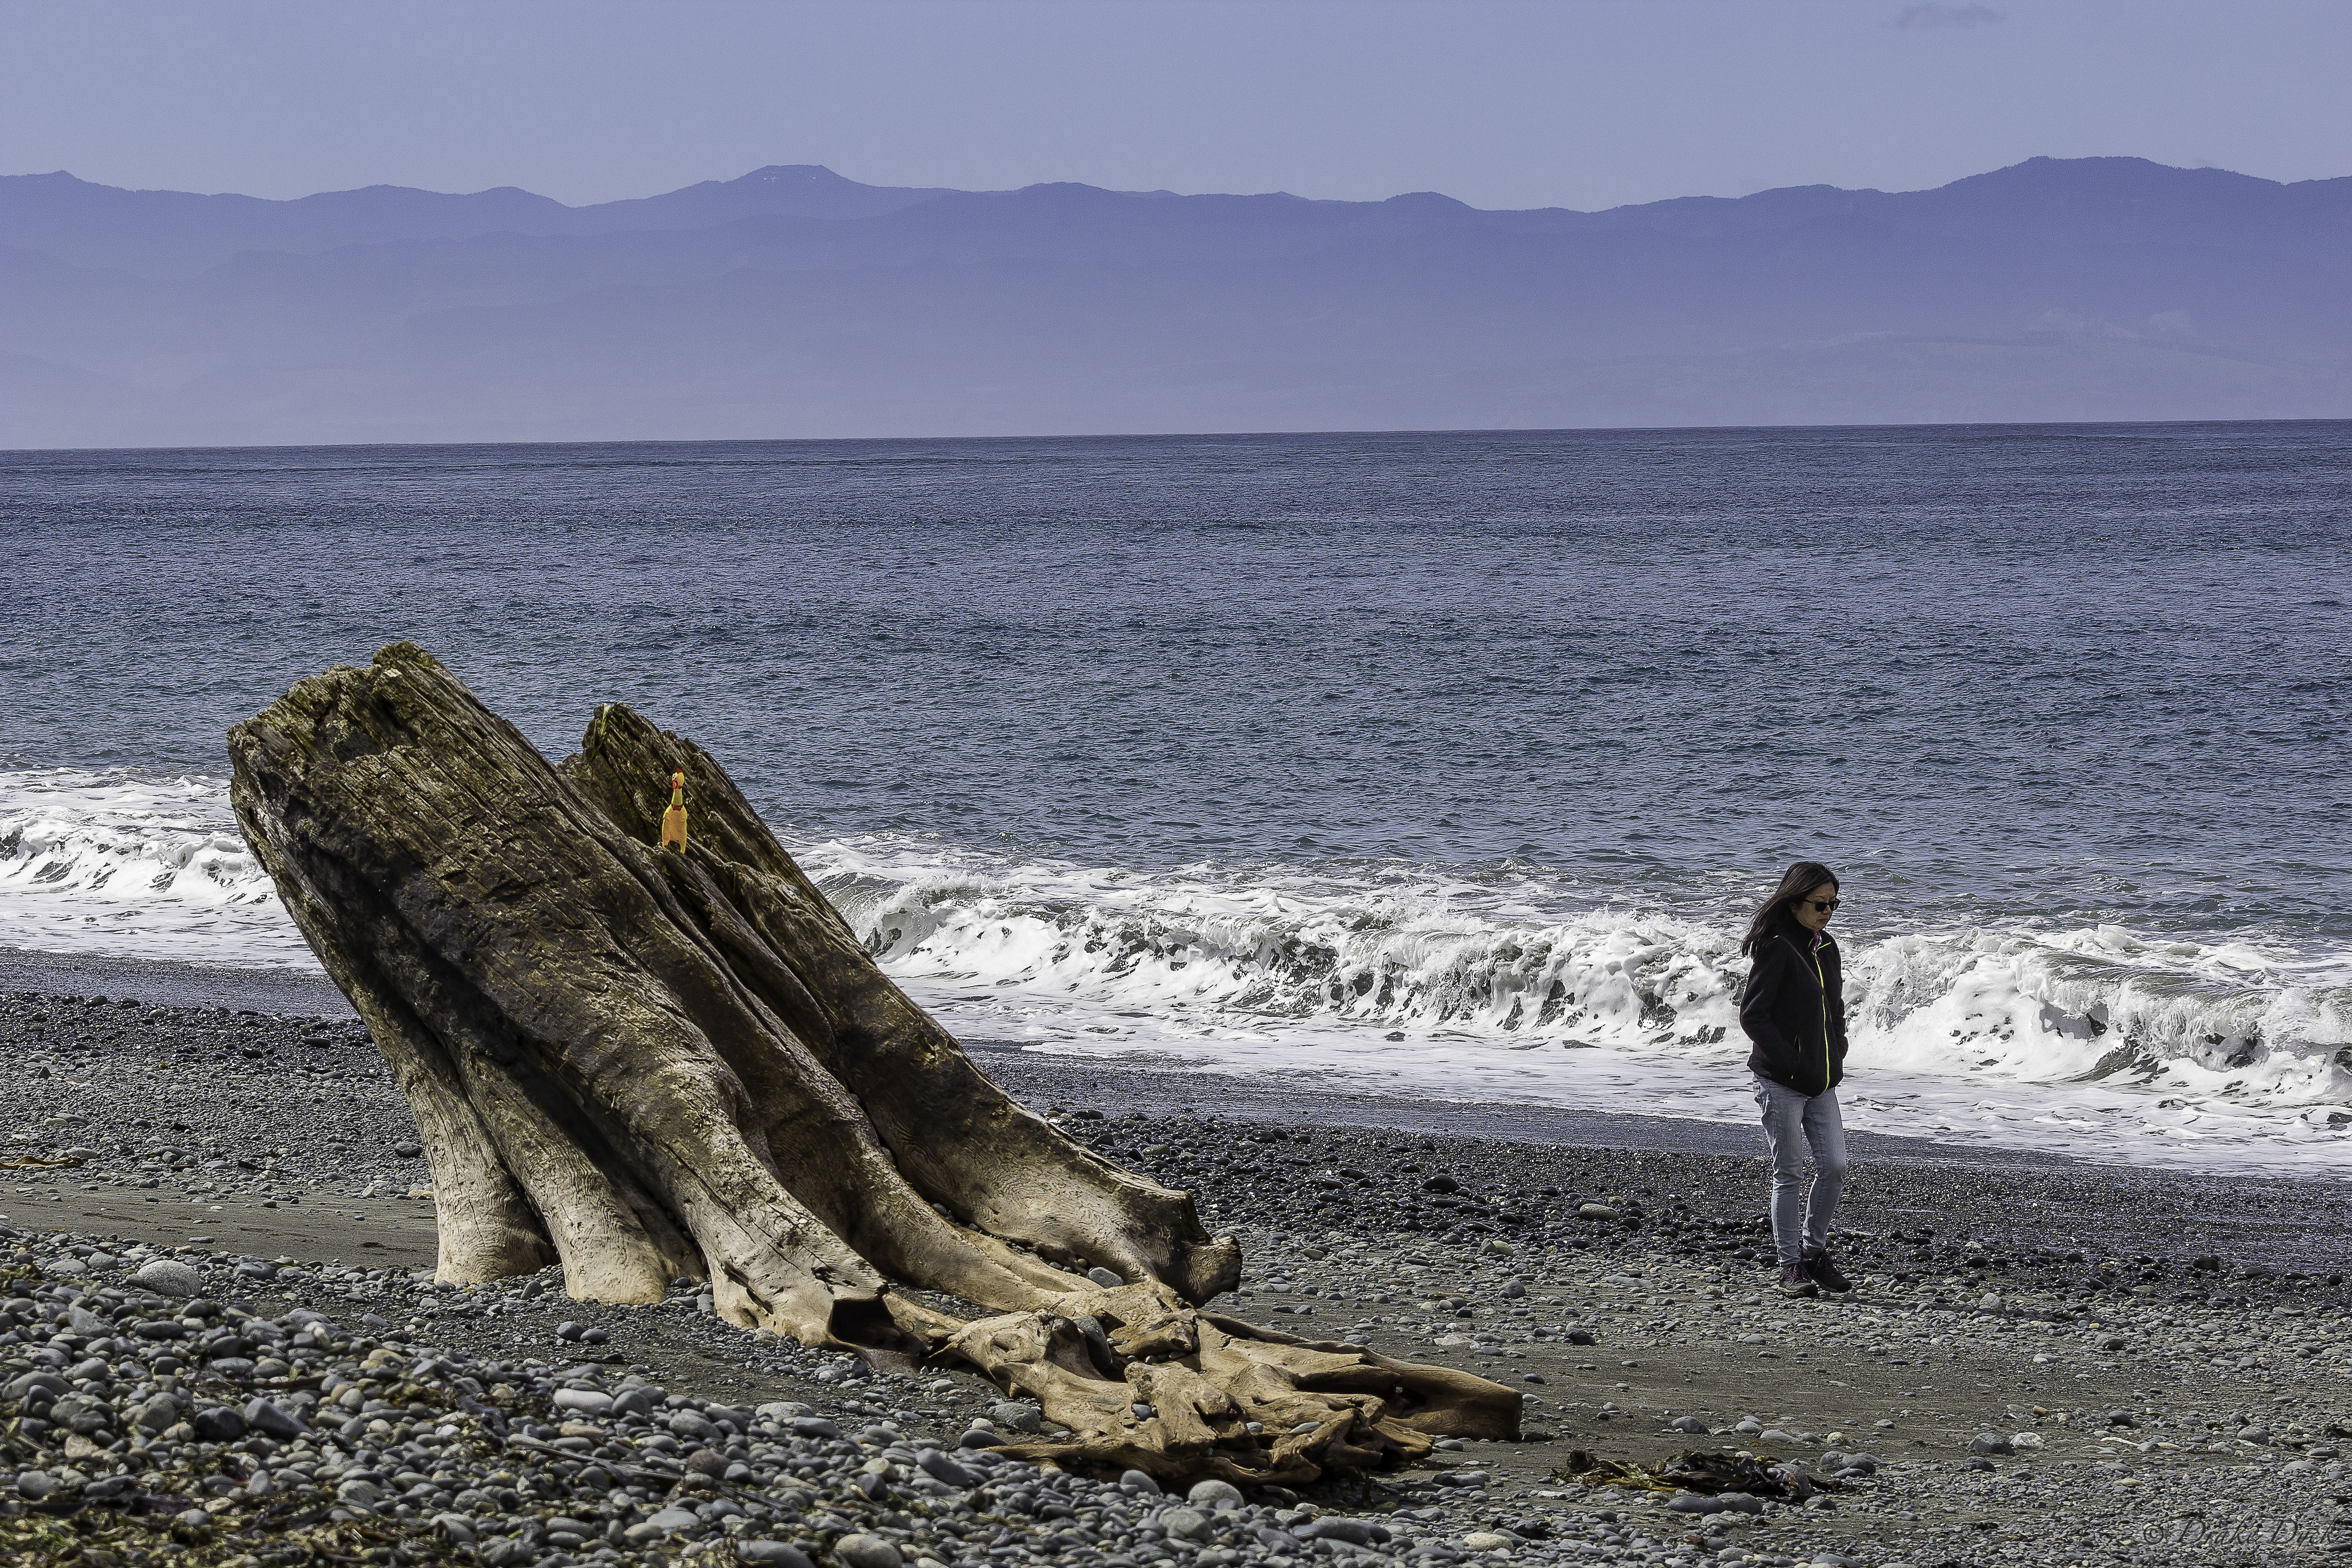 a rocky beach watched over by a chicken on a log and walking woman